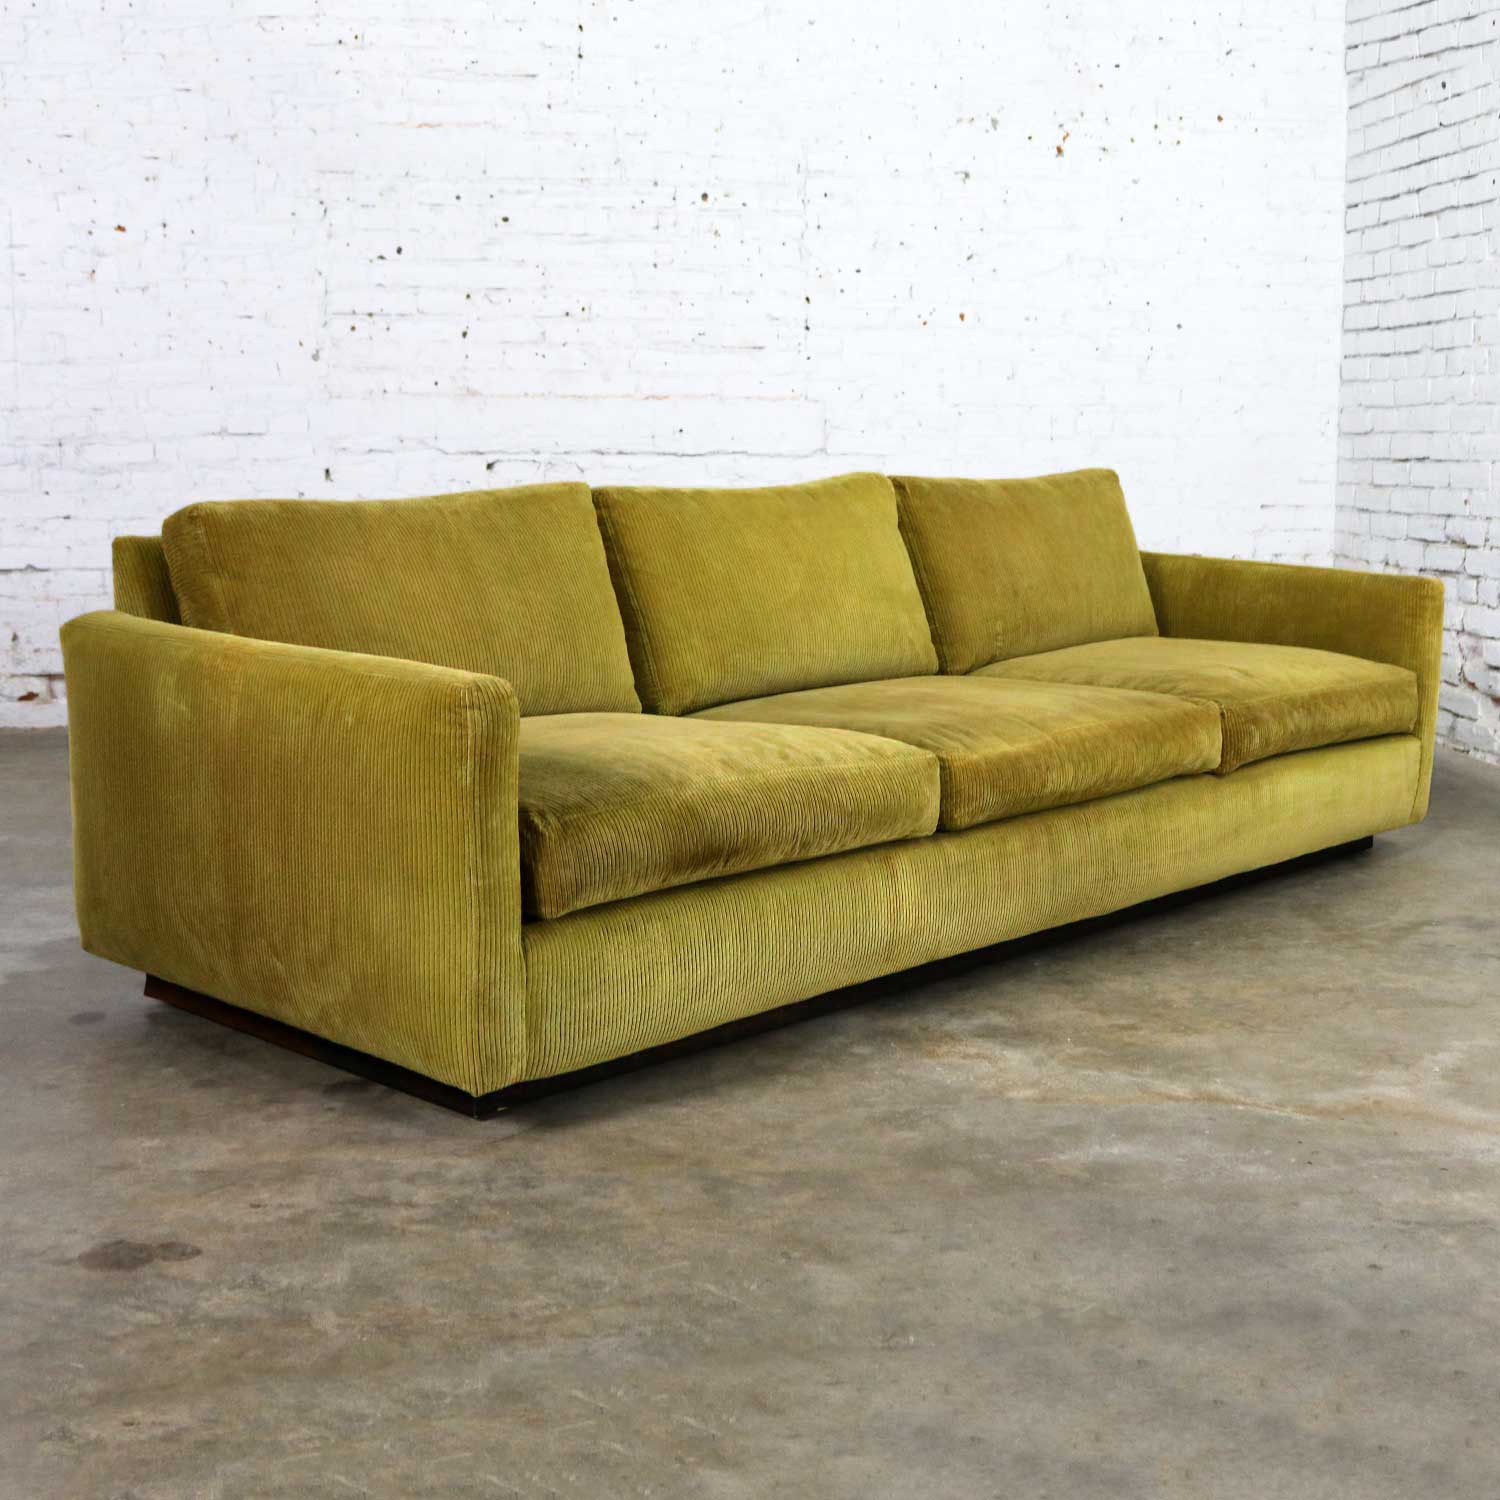 Prime Lawson Style Wide Wale Corduroy Sofa By Milo Baughman For Gmtry Best Dining Table And Chair Ideas Images Gmtryco